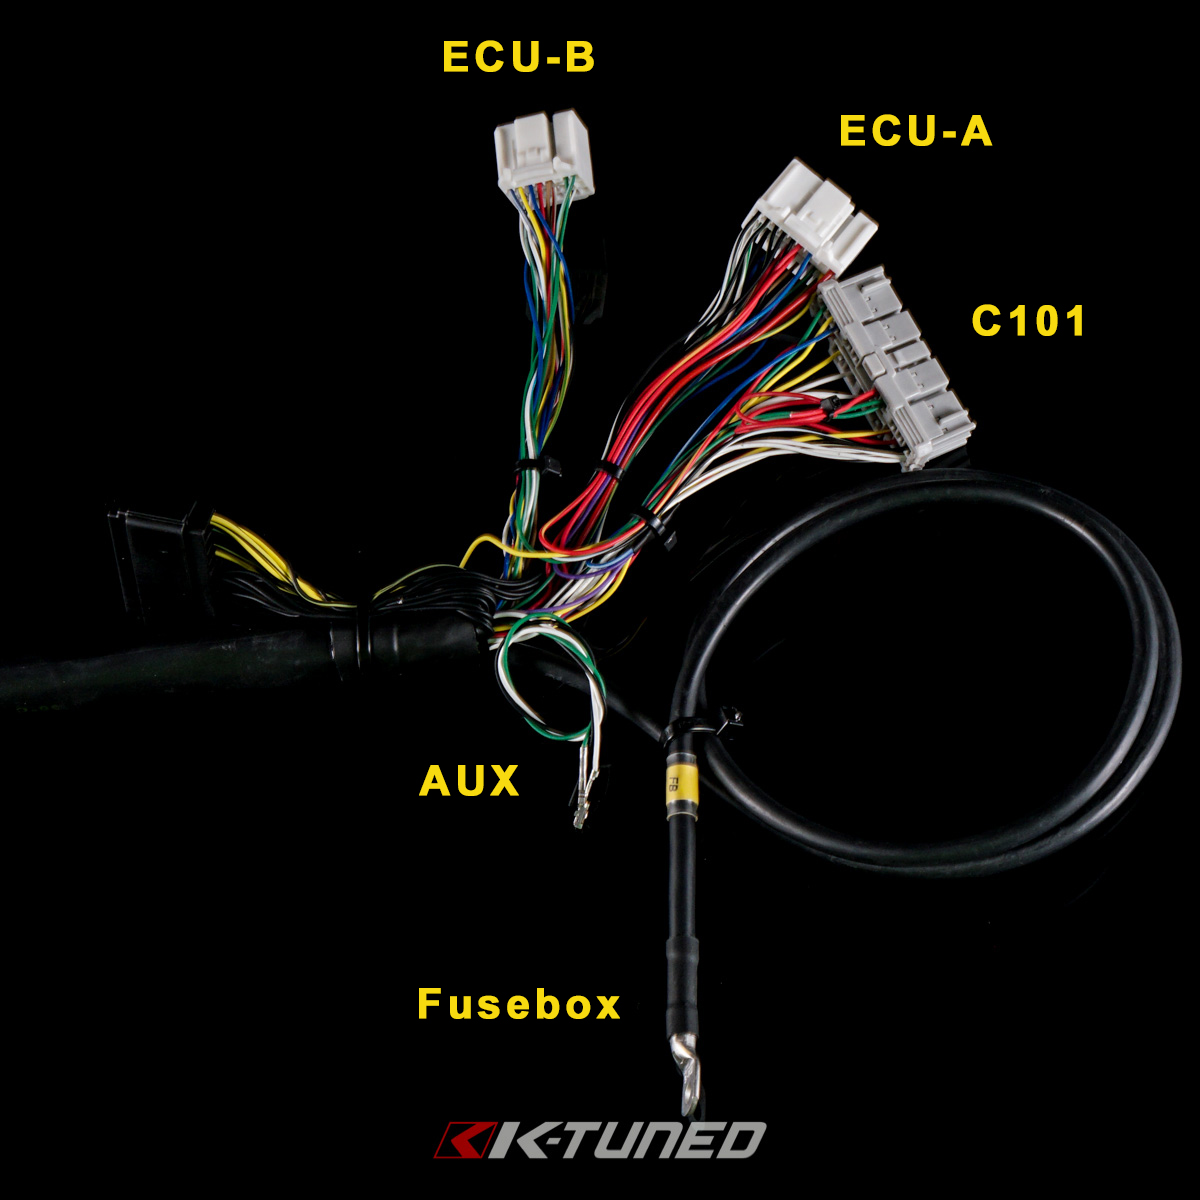 KTH 204 ENG_017 k series tucked engine harness rsx tucked wire harness at panicattacktreatment.co